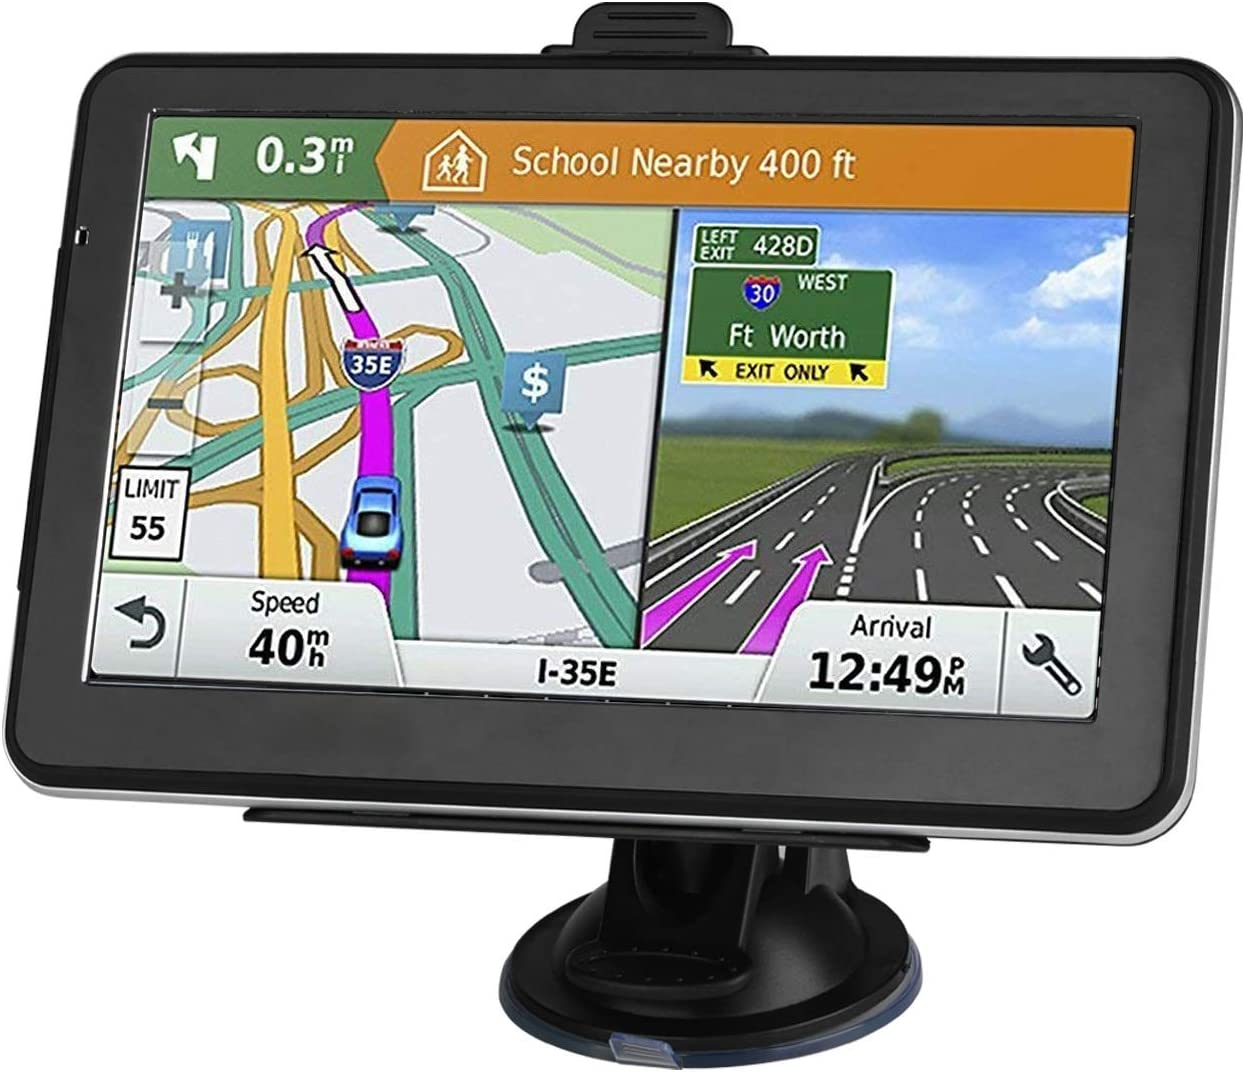 GPS Navigation for Car, 7 Inch 8GB HD Touch Screen Built-in 256MB GPS Navigation System Spoken Turn-by-Turn Directions for Car Vehicle GPS Navigator with (Lifetime Map Update